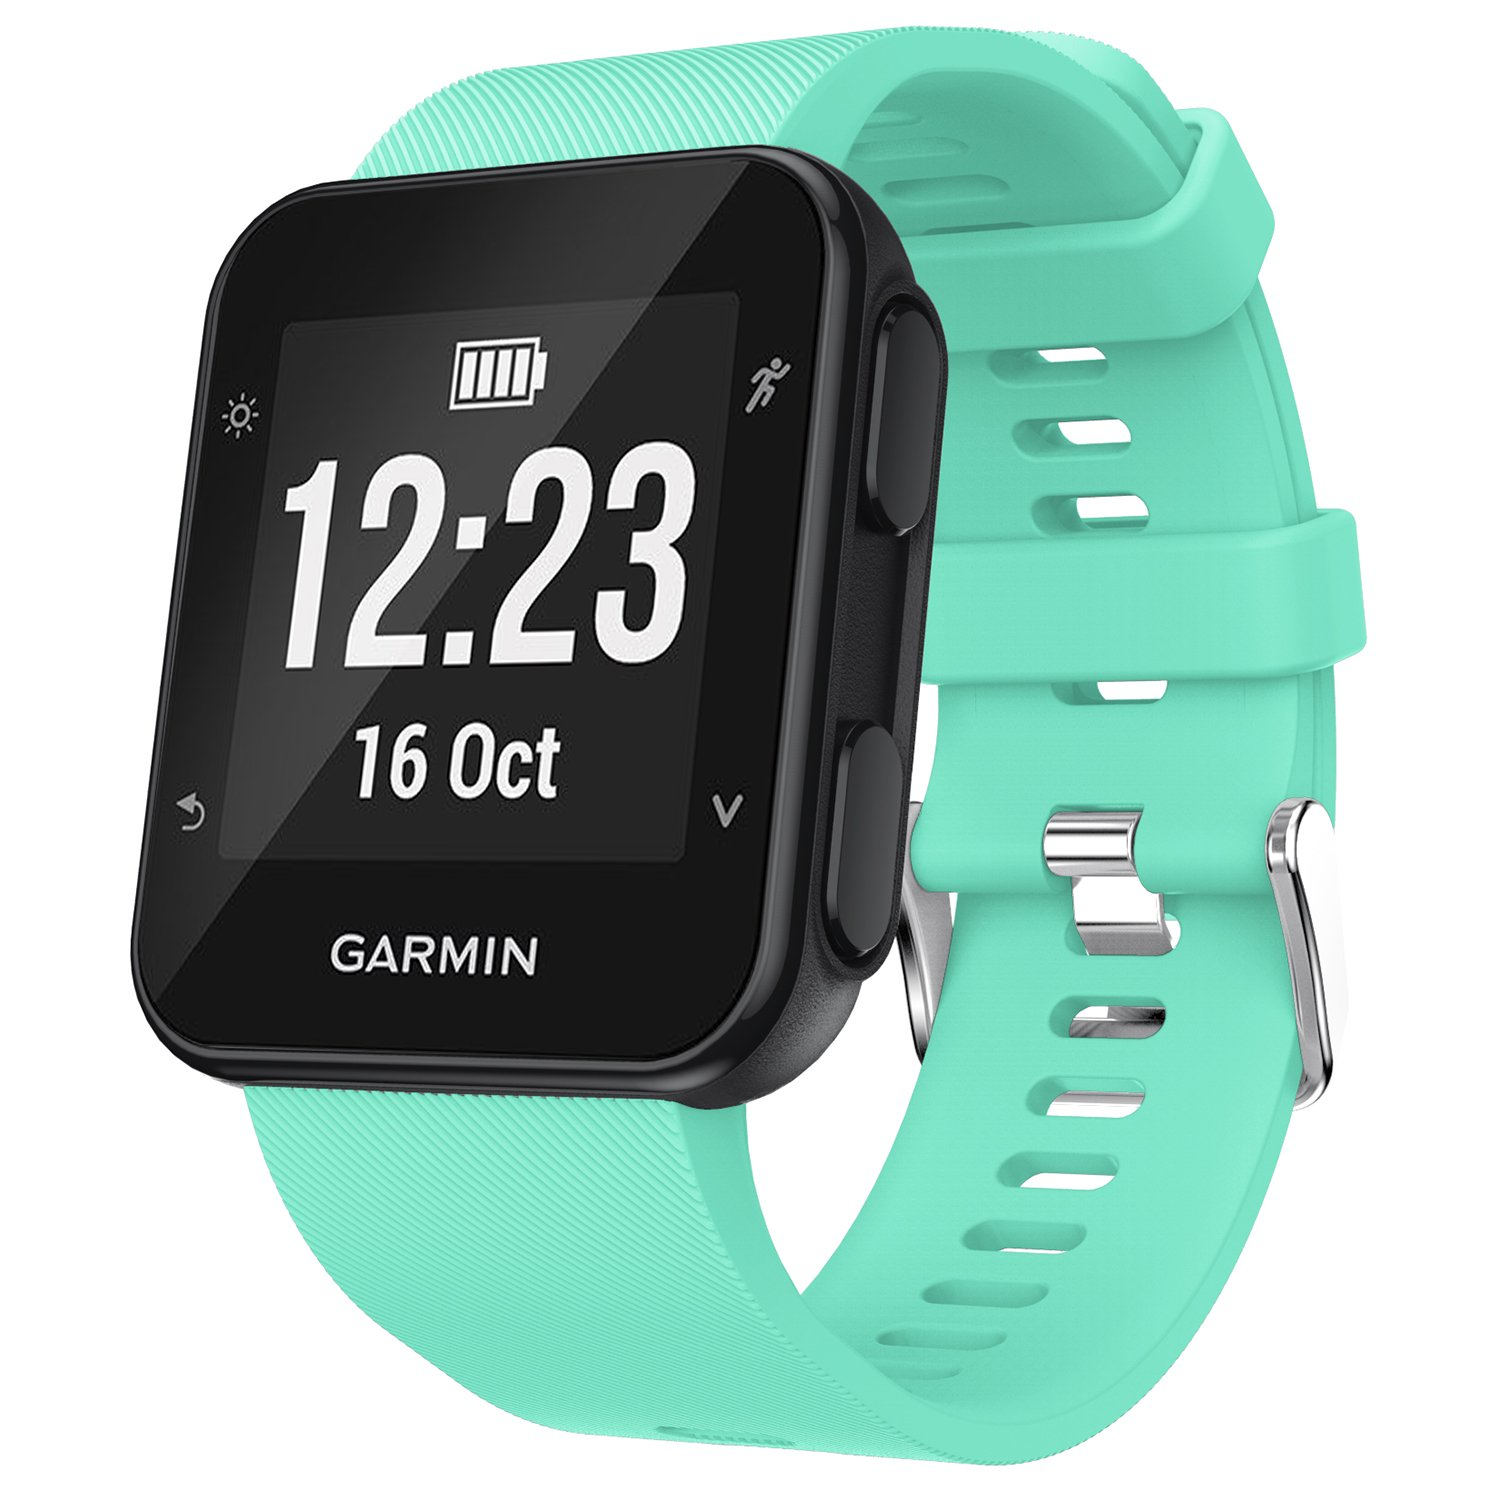 Amazon.com: Garmin Forerunner 35 Watch Band, Soft Silicone ...